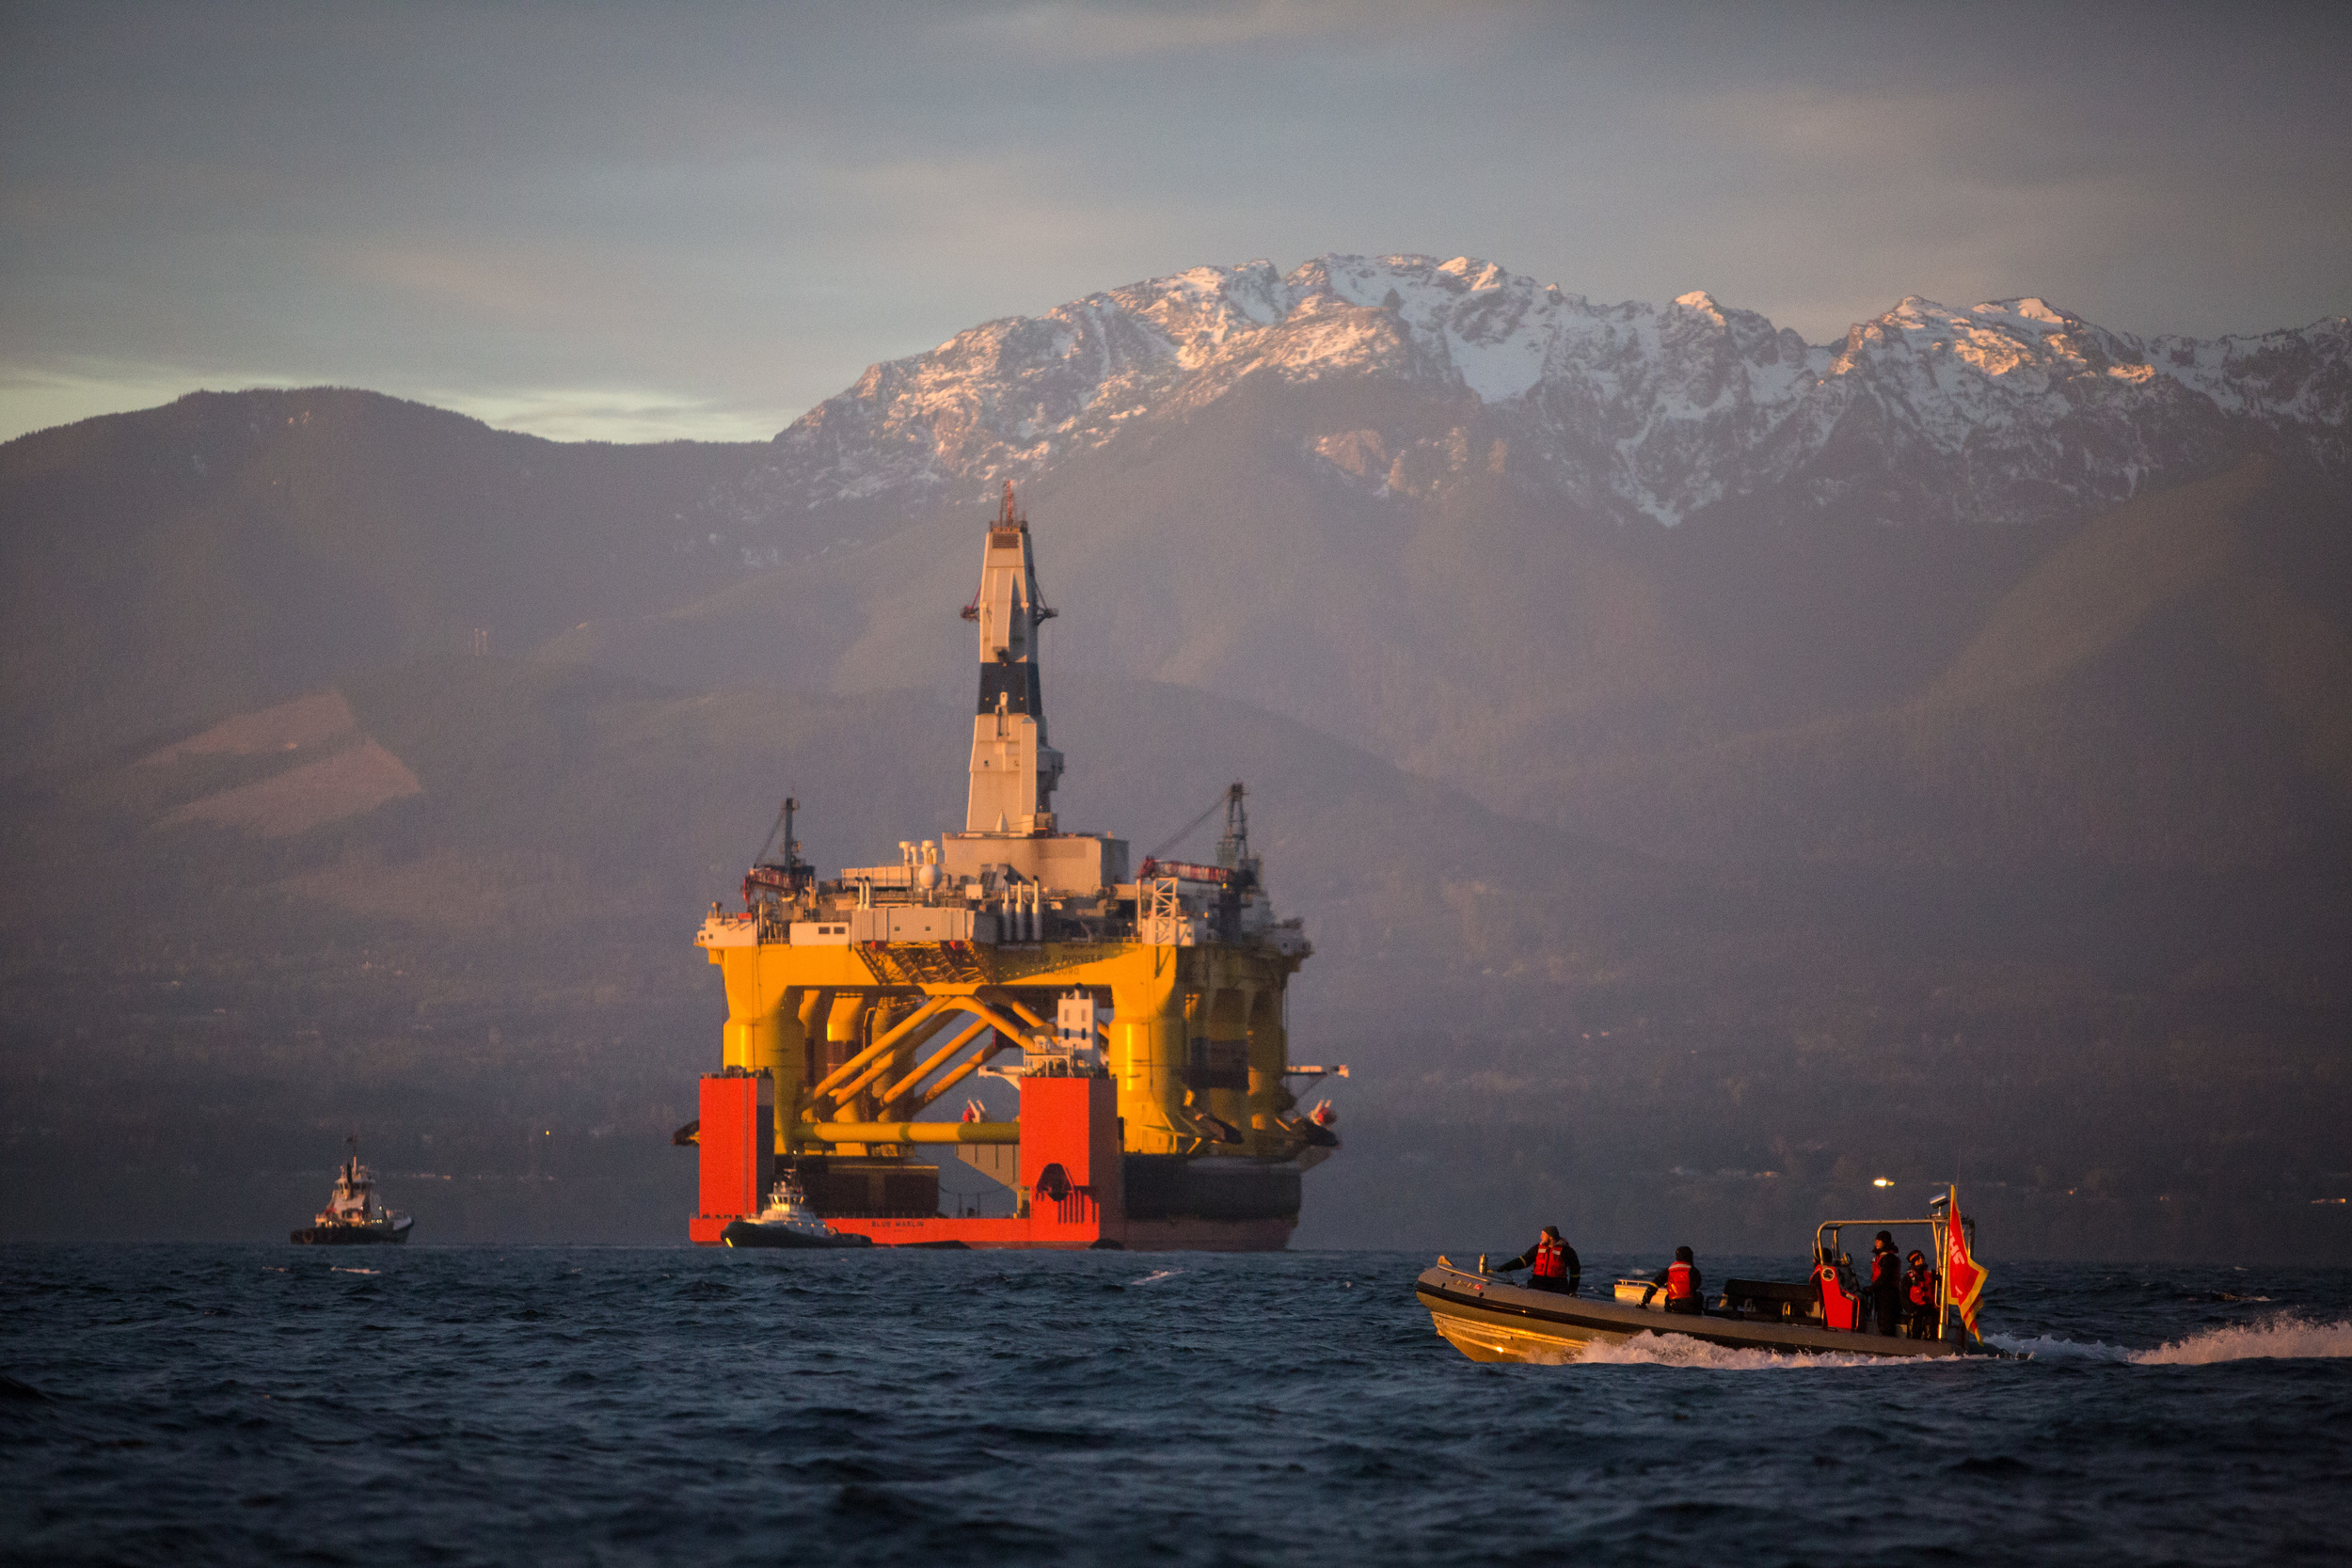 With the Olympic Mountains in the background, a Greenpeace boat crosses in front of the Transocean Polar Pioneer as it arrives in Port Angeles, Washington on its way to Seattle. The rig arrived aboard a transport ship after traveling across the Pacific before its eventual Arctic destination.